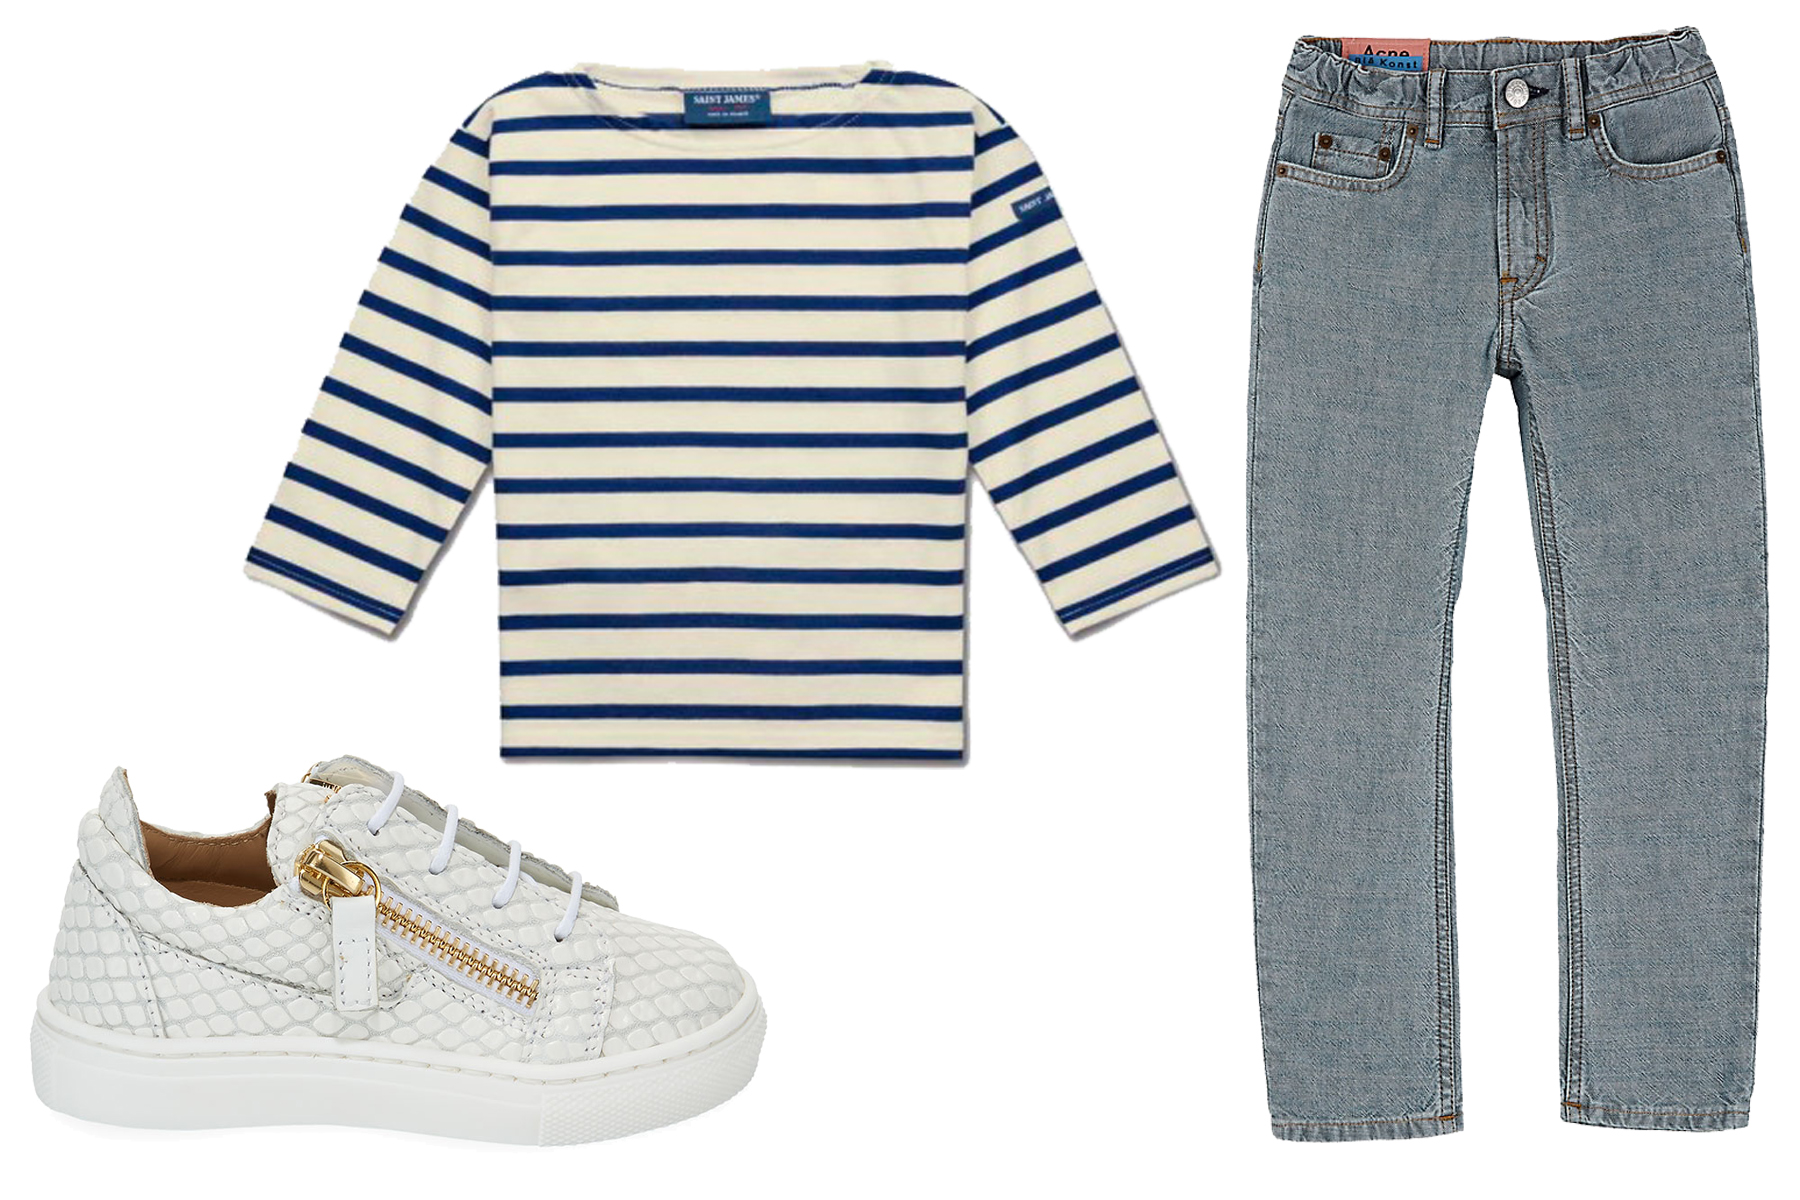 summertime-casual-looks-for-kids-look-2 8 Casual Summertime Looks For Kids